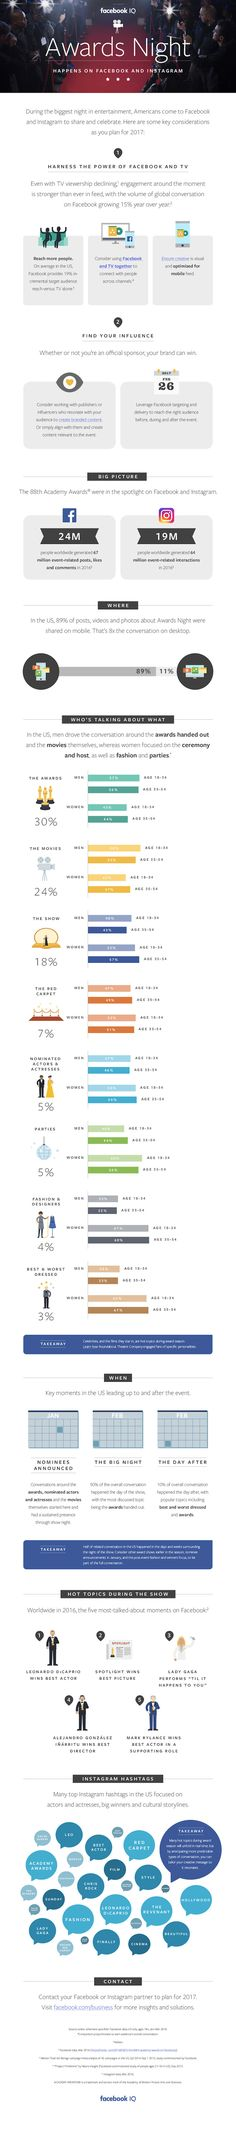 Tapping into the Academy Awards Conversation on Facebook and Instagram [Infographic] | Social Media Today